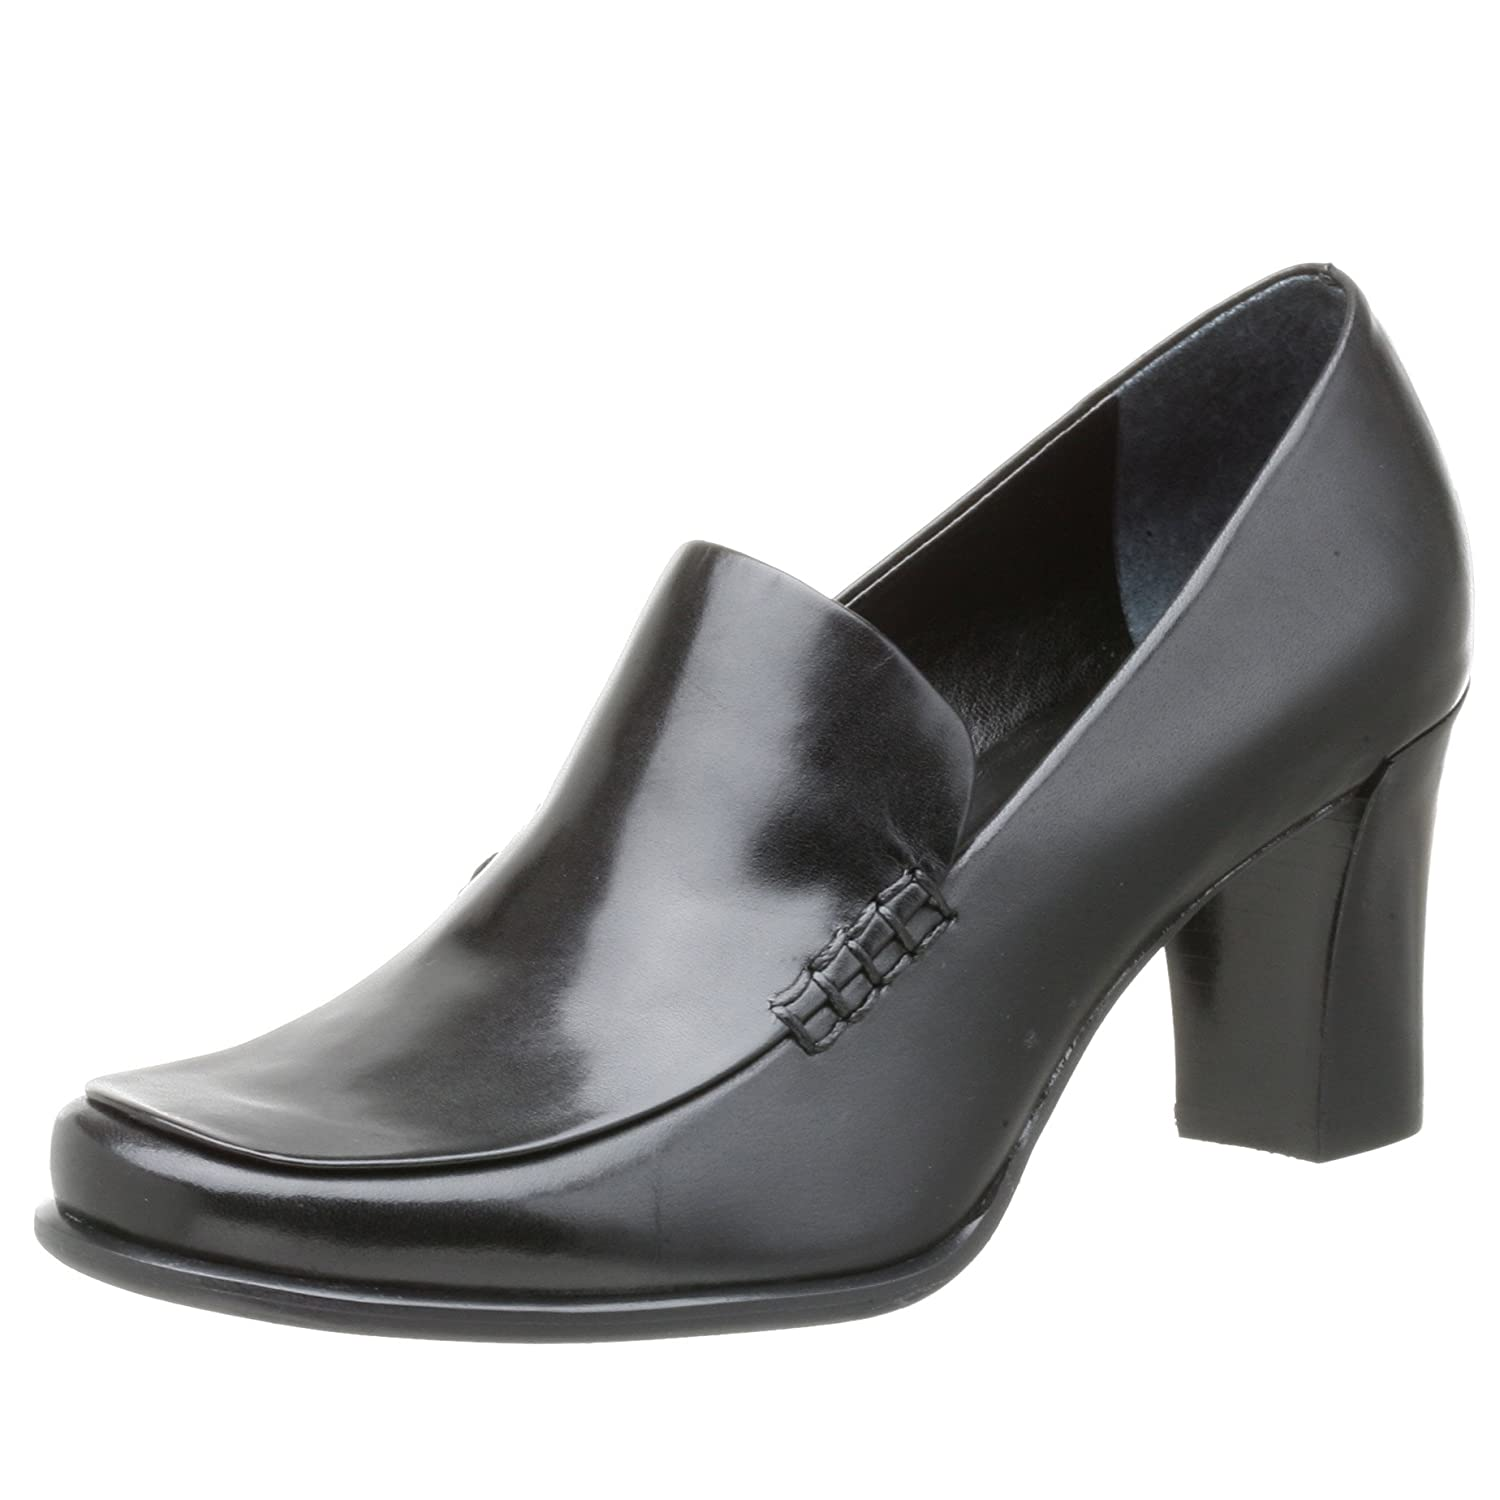 Franco Sarto Women's Nolan Tailored Slip-on Pump B000PHGXUO 7 B(M) US|Black